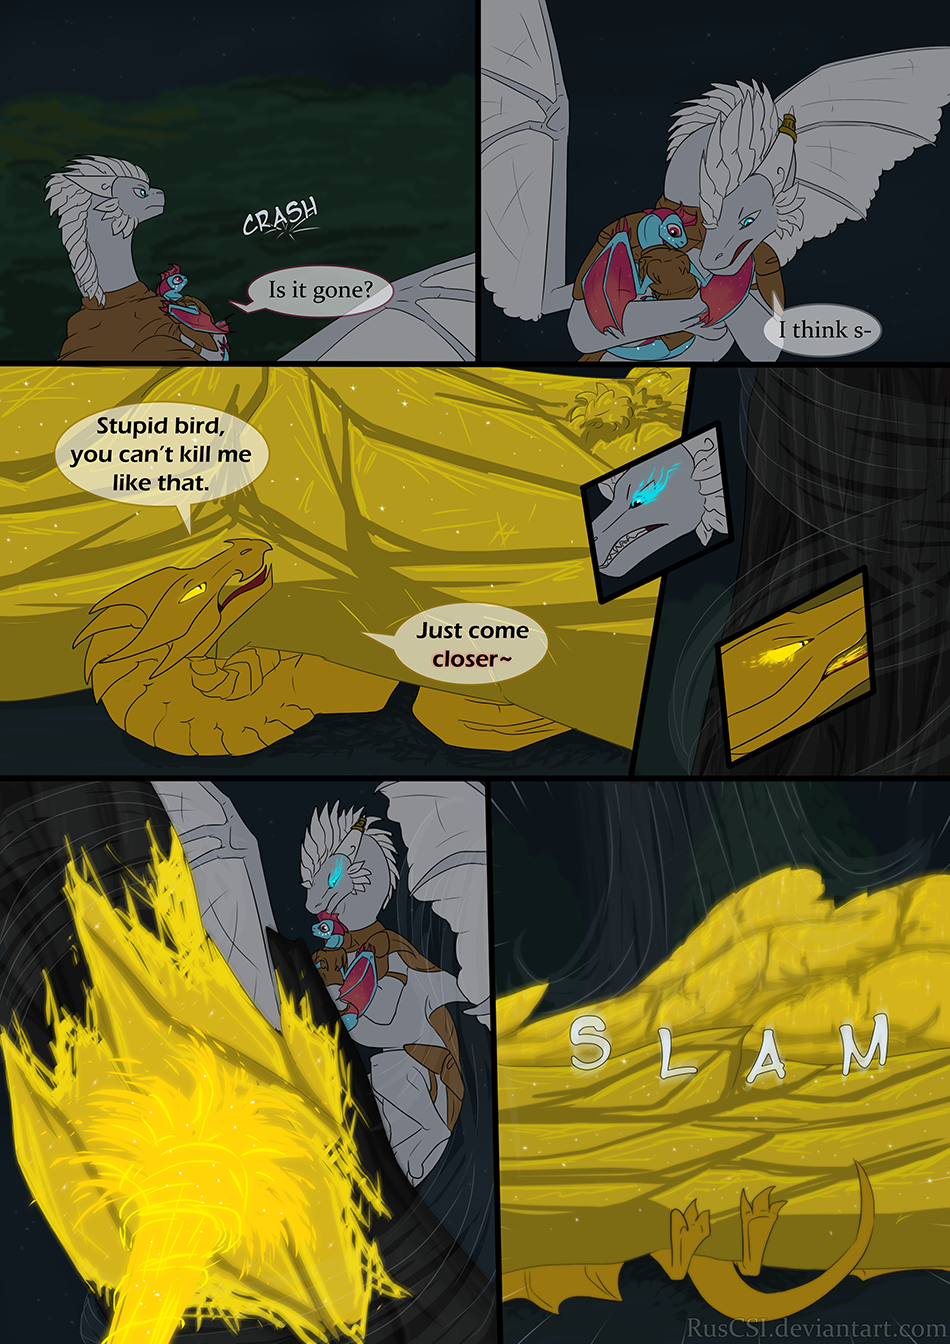 Courage of the cowardly dragon - page 44